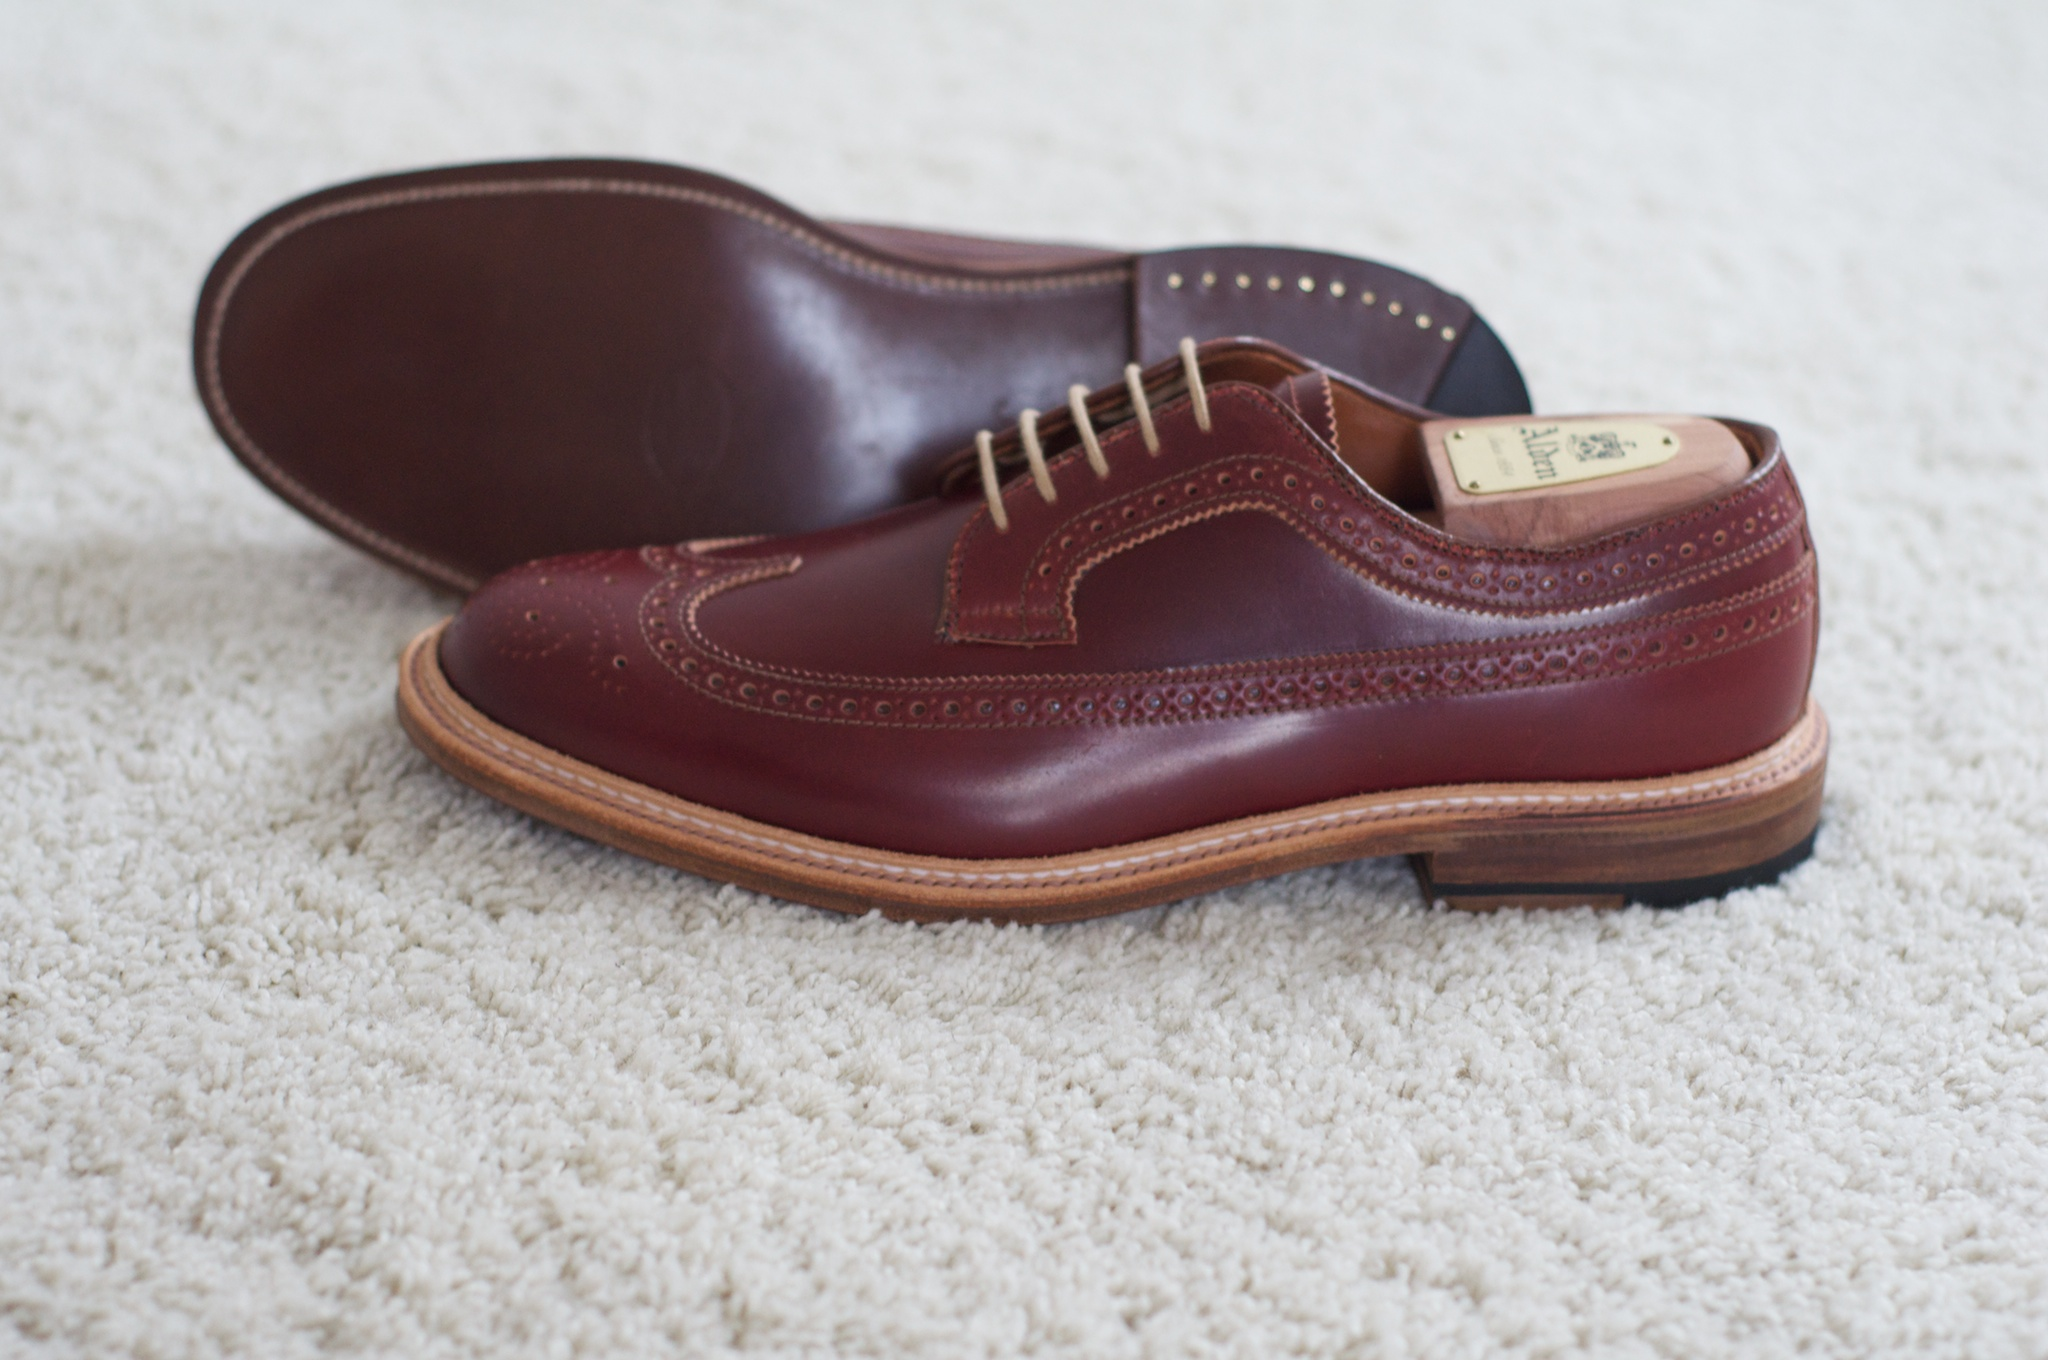 Red Wing Shoes Corpus Christi